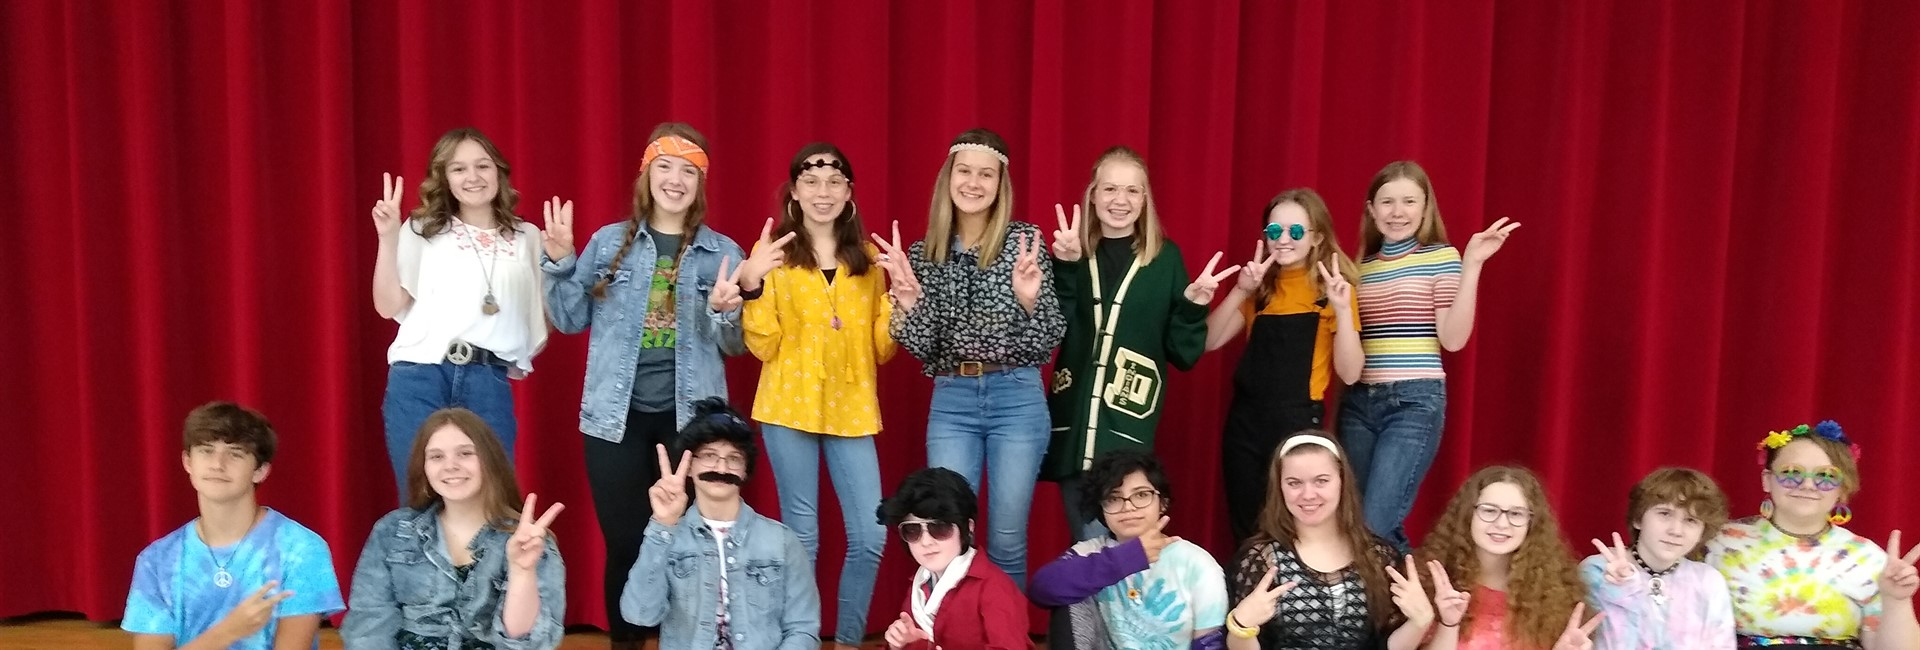 70s Day Party at KVMS